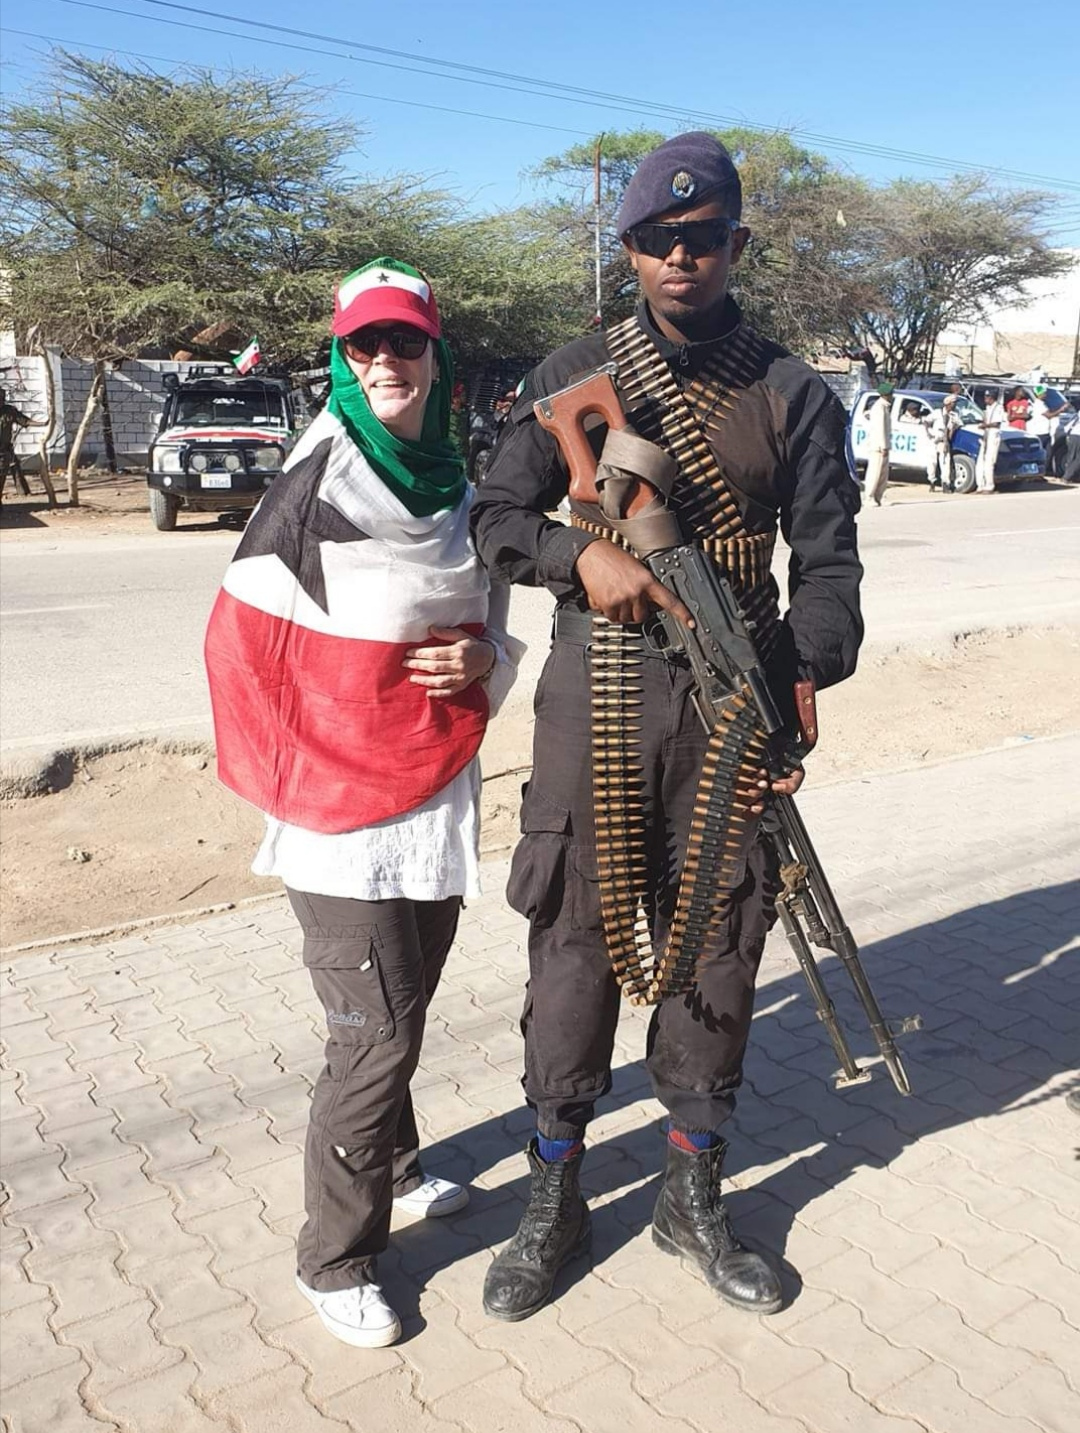 A Somaliland Soldier armed to the teeth during Somaliland Independence Day Parade